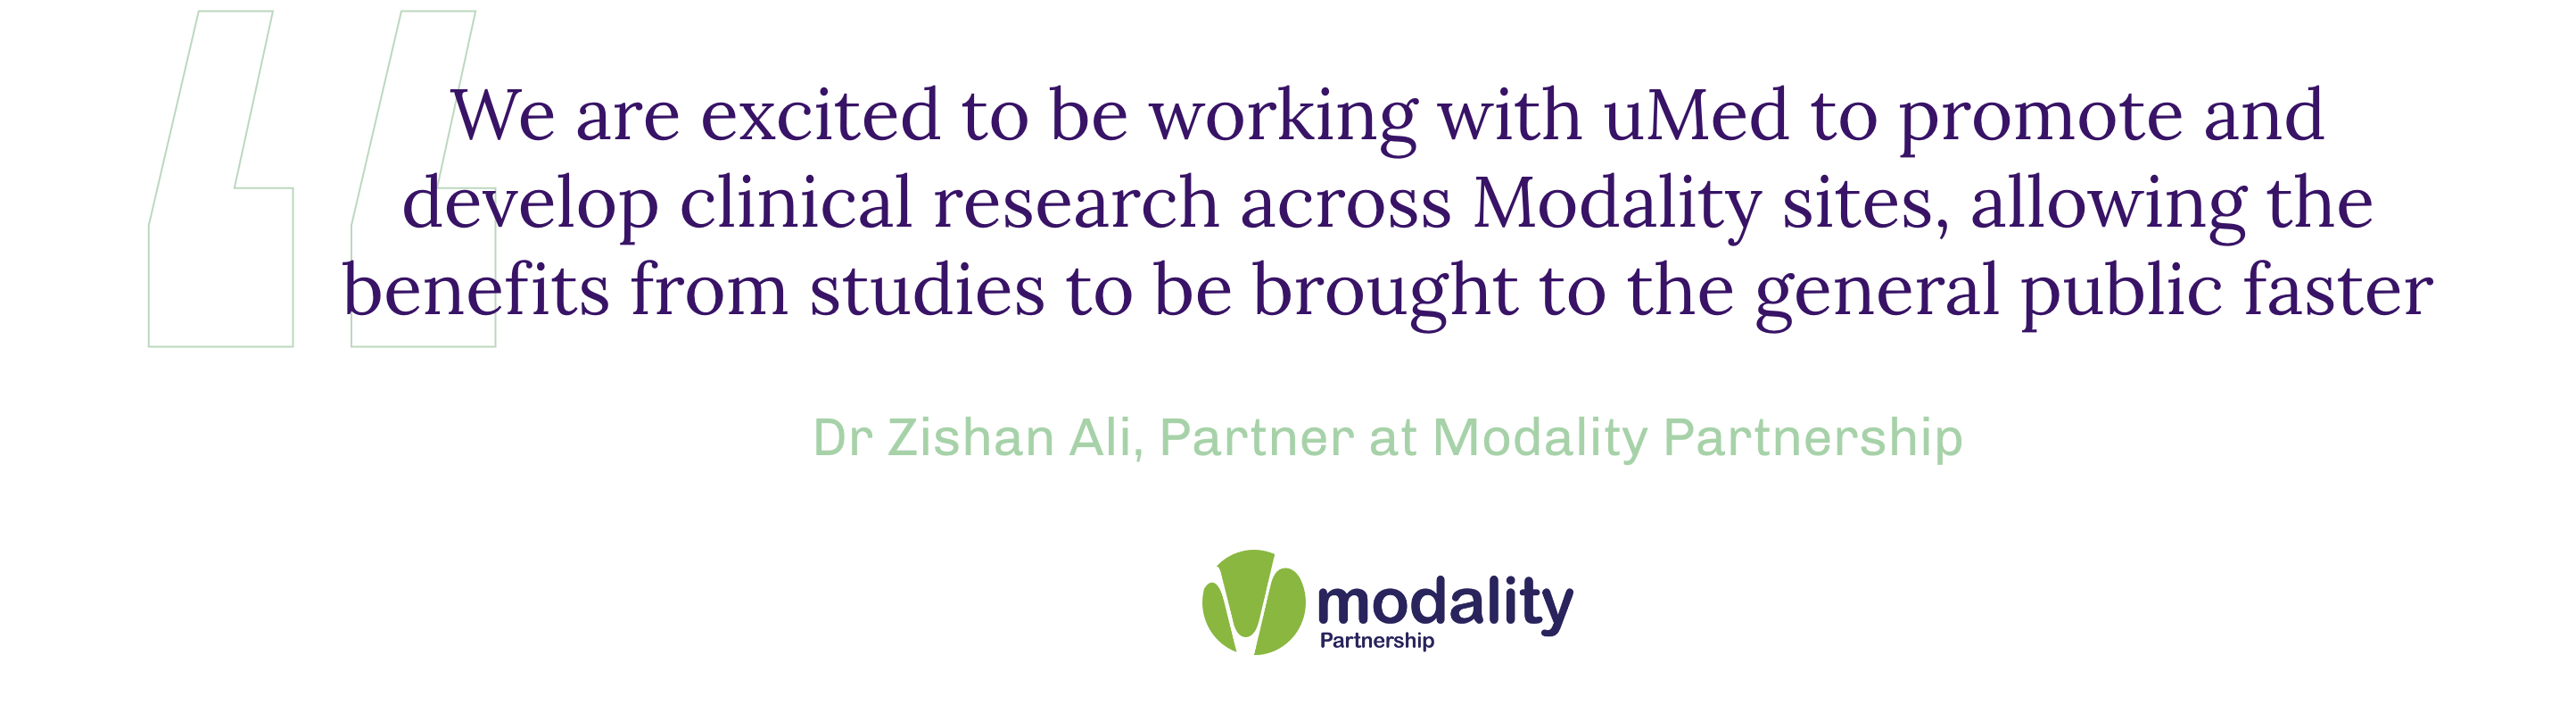 Dr Zishan Ali - Modality Quote